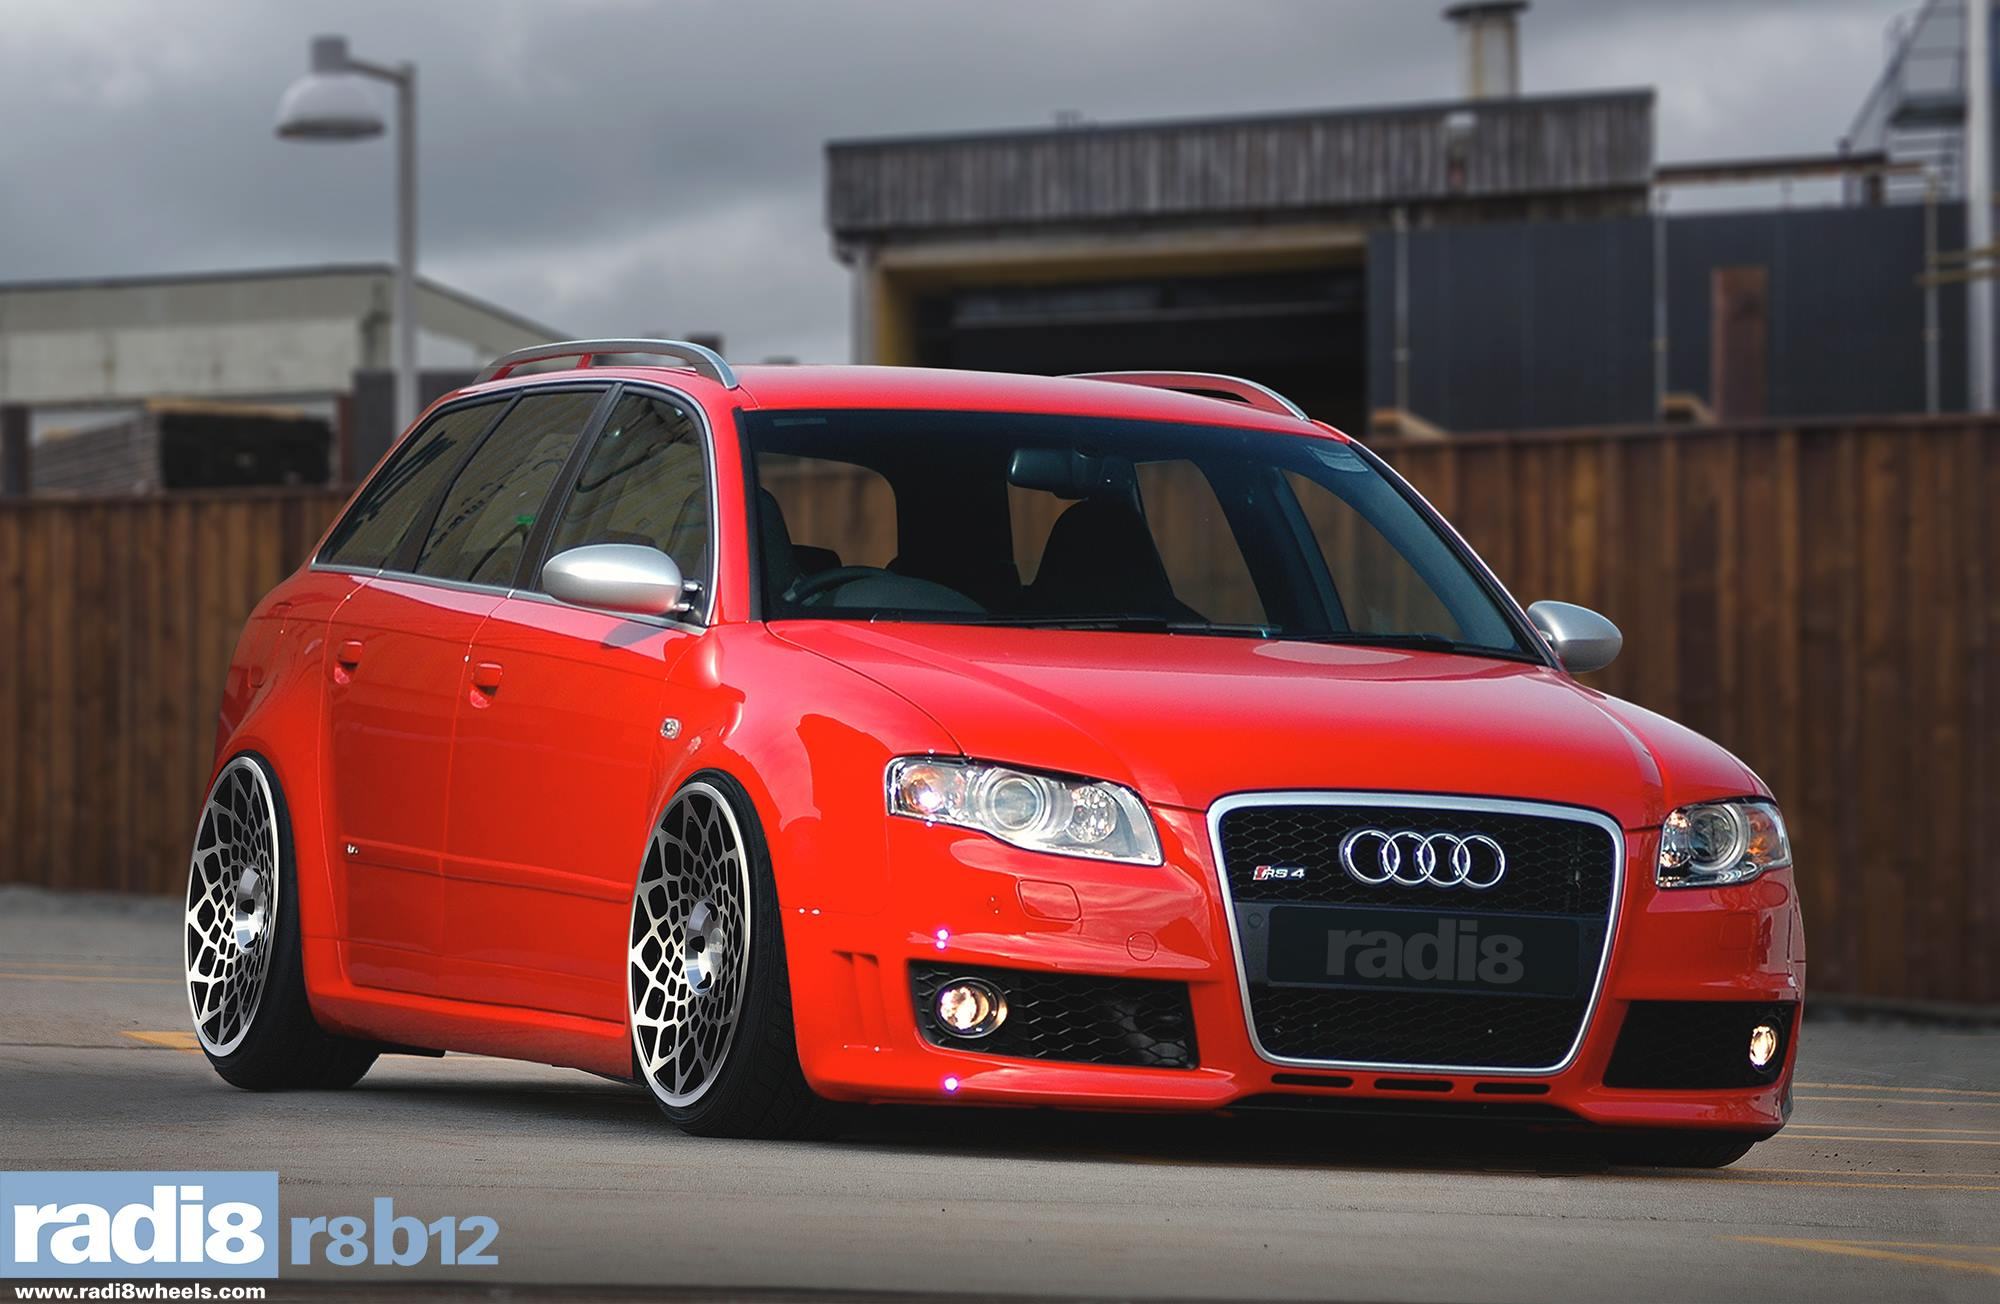 Radi8 R8B12 Wheels - Audi RS 4